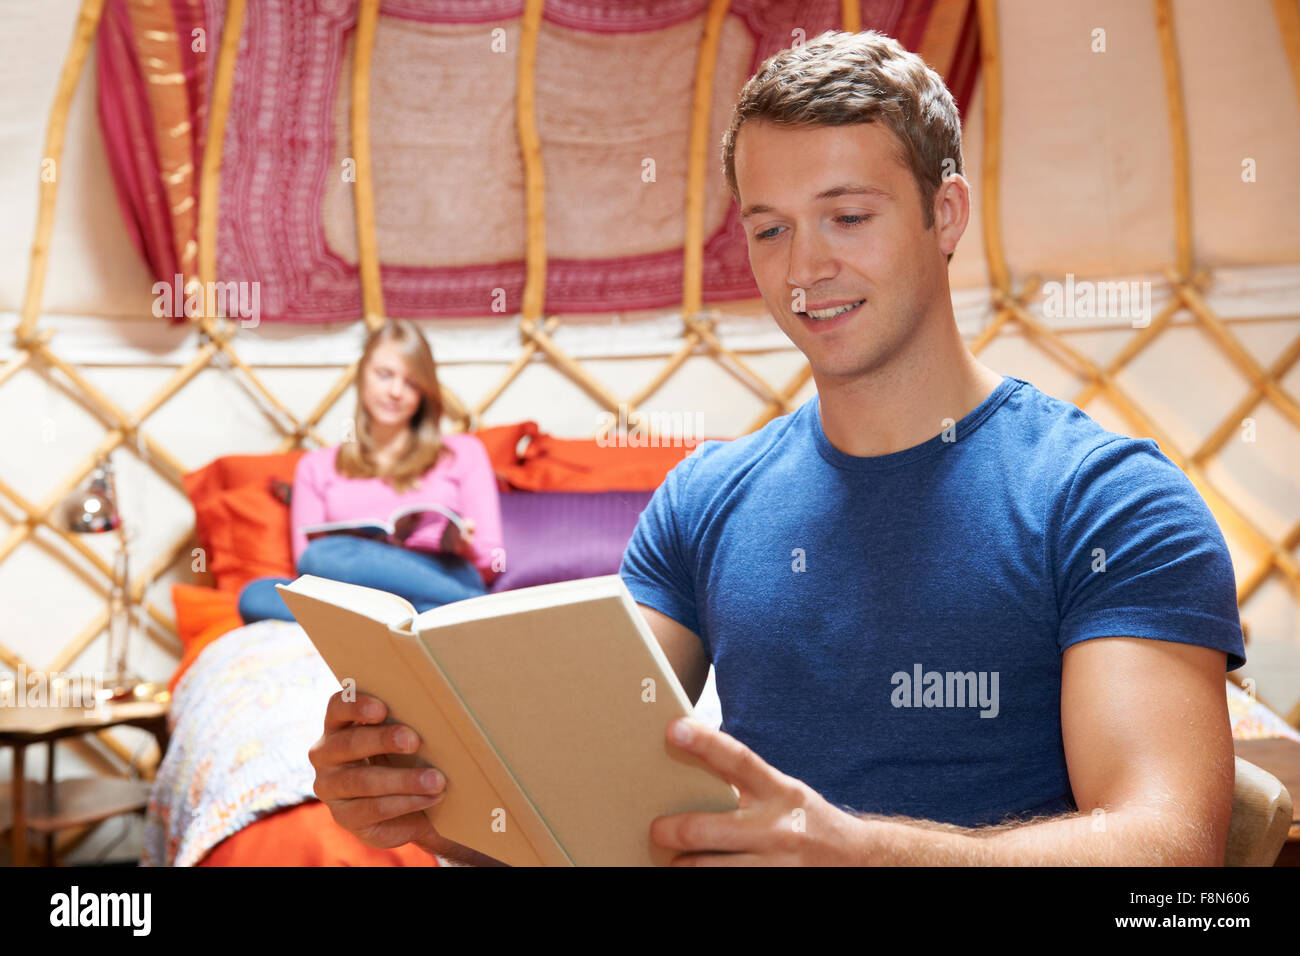 Couple Relaxing On Holiday In Yurt - Stock Image